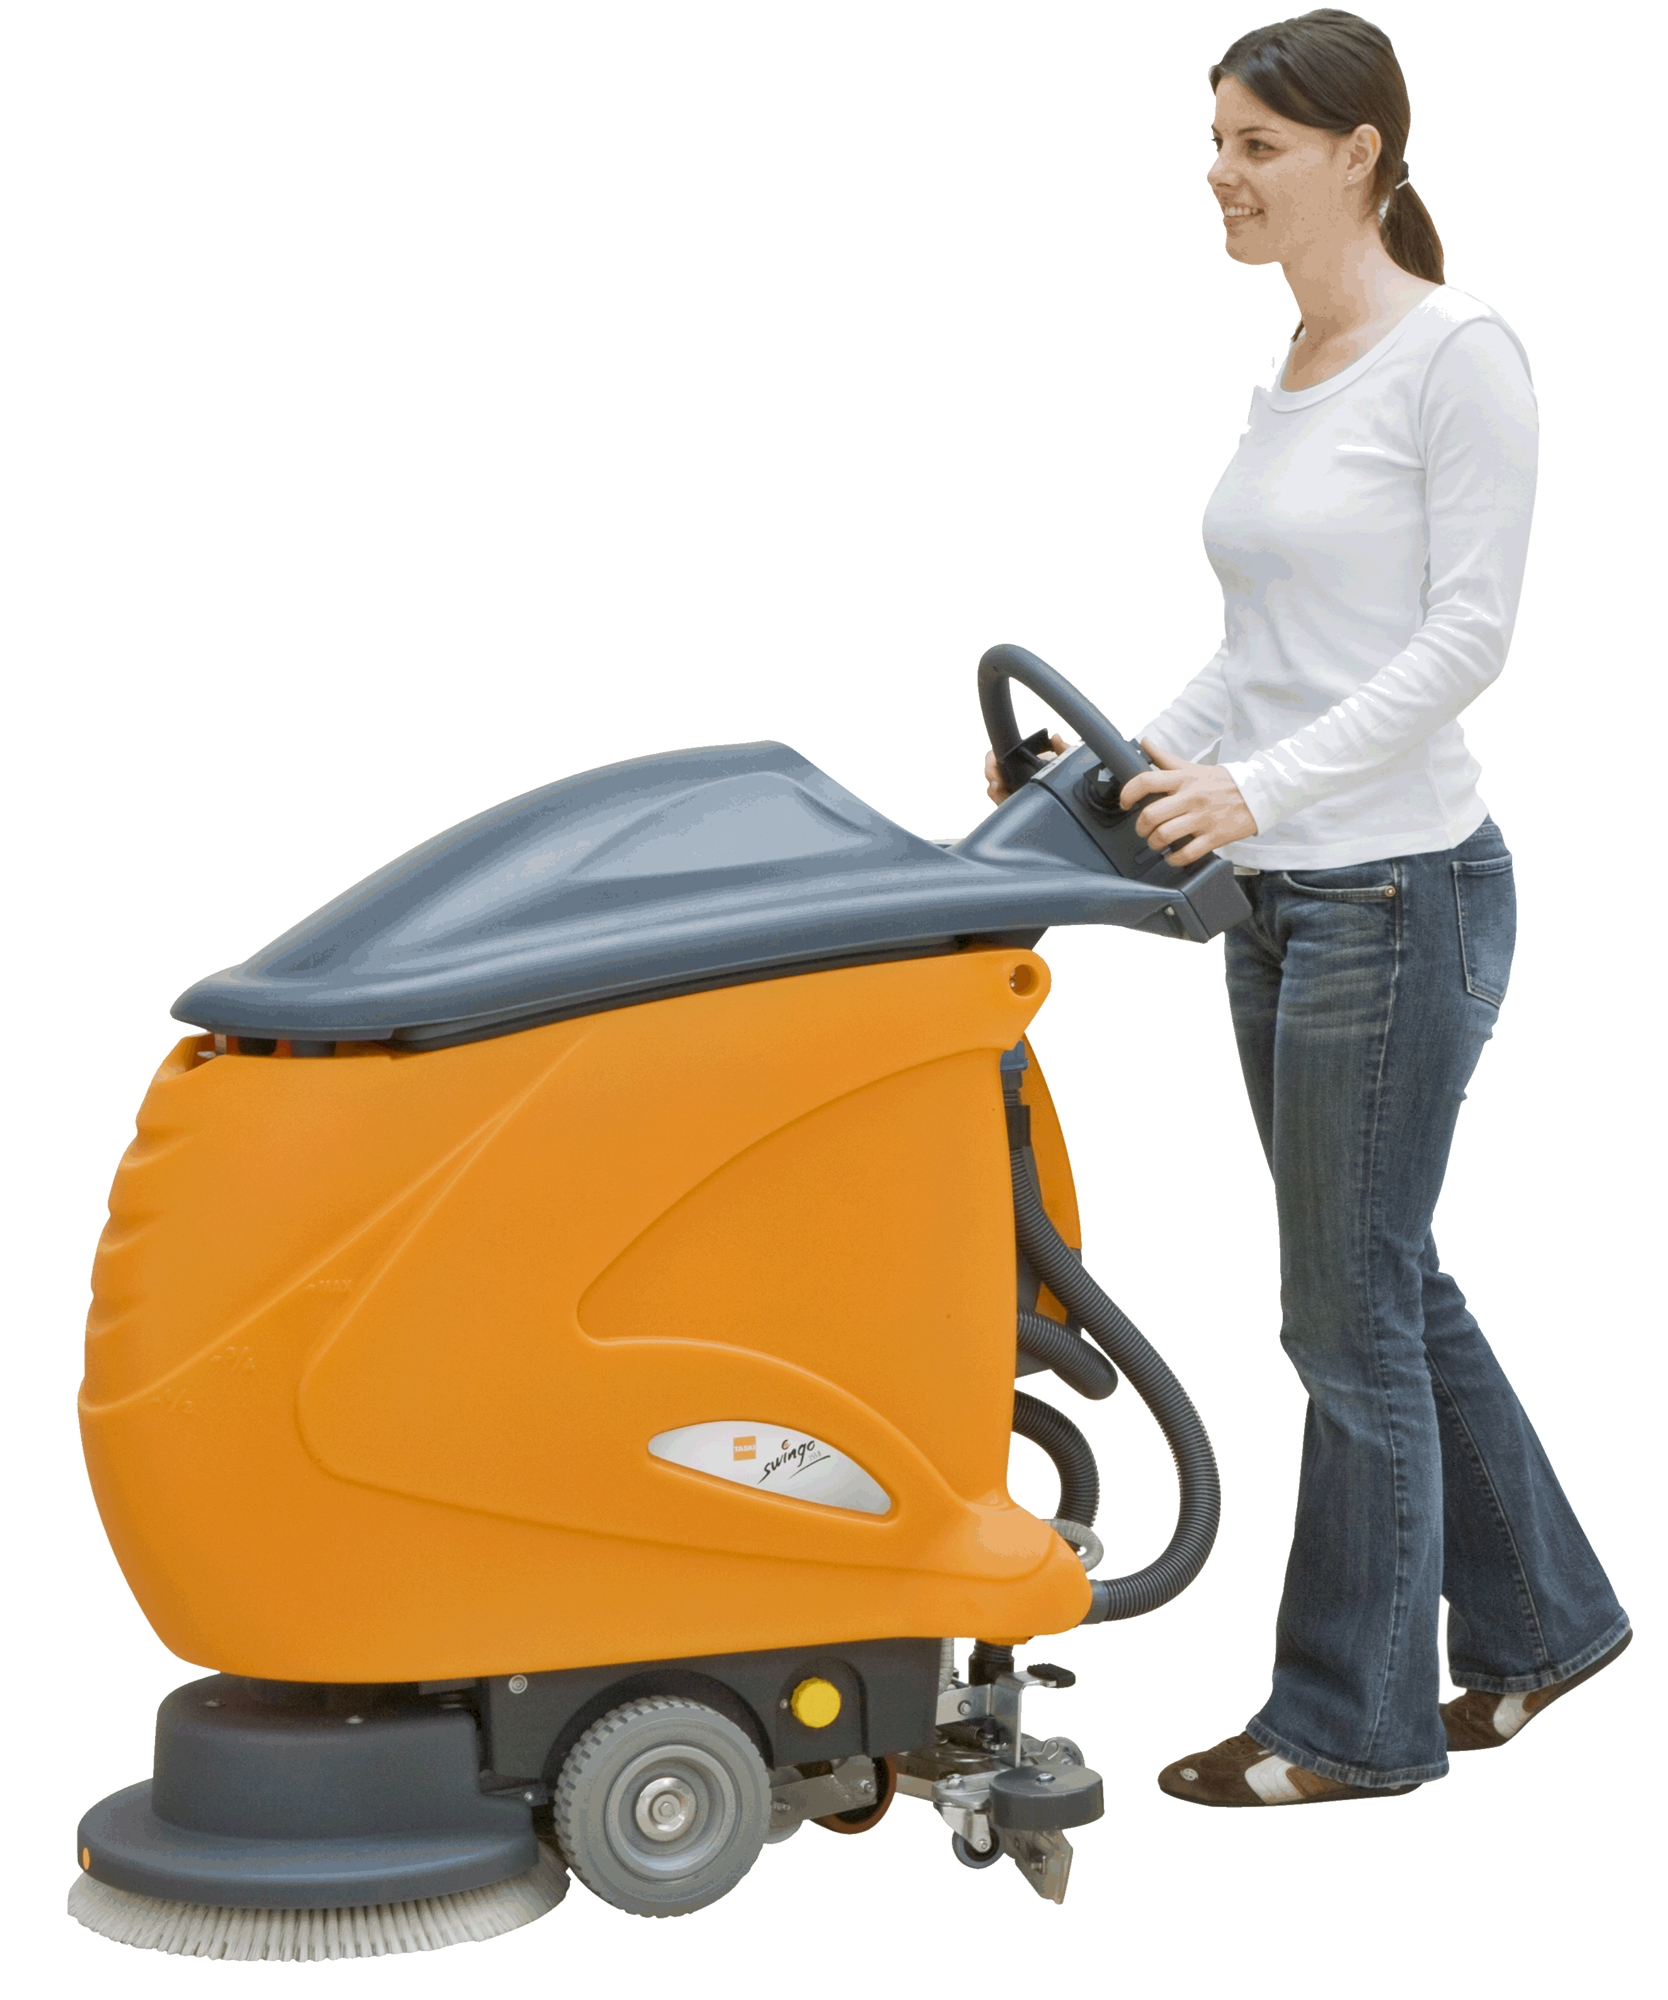 Scrubber Taski Swingo 755 Battery